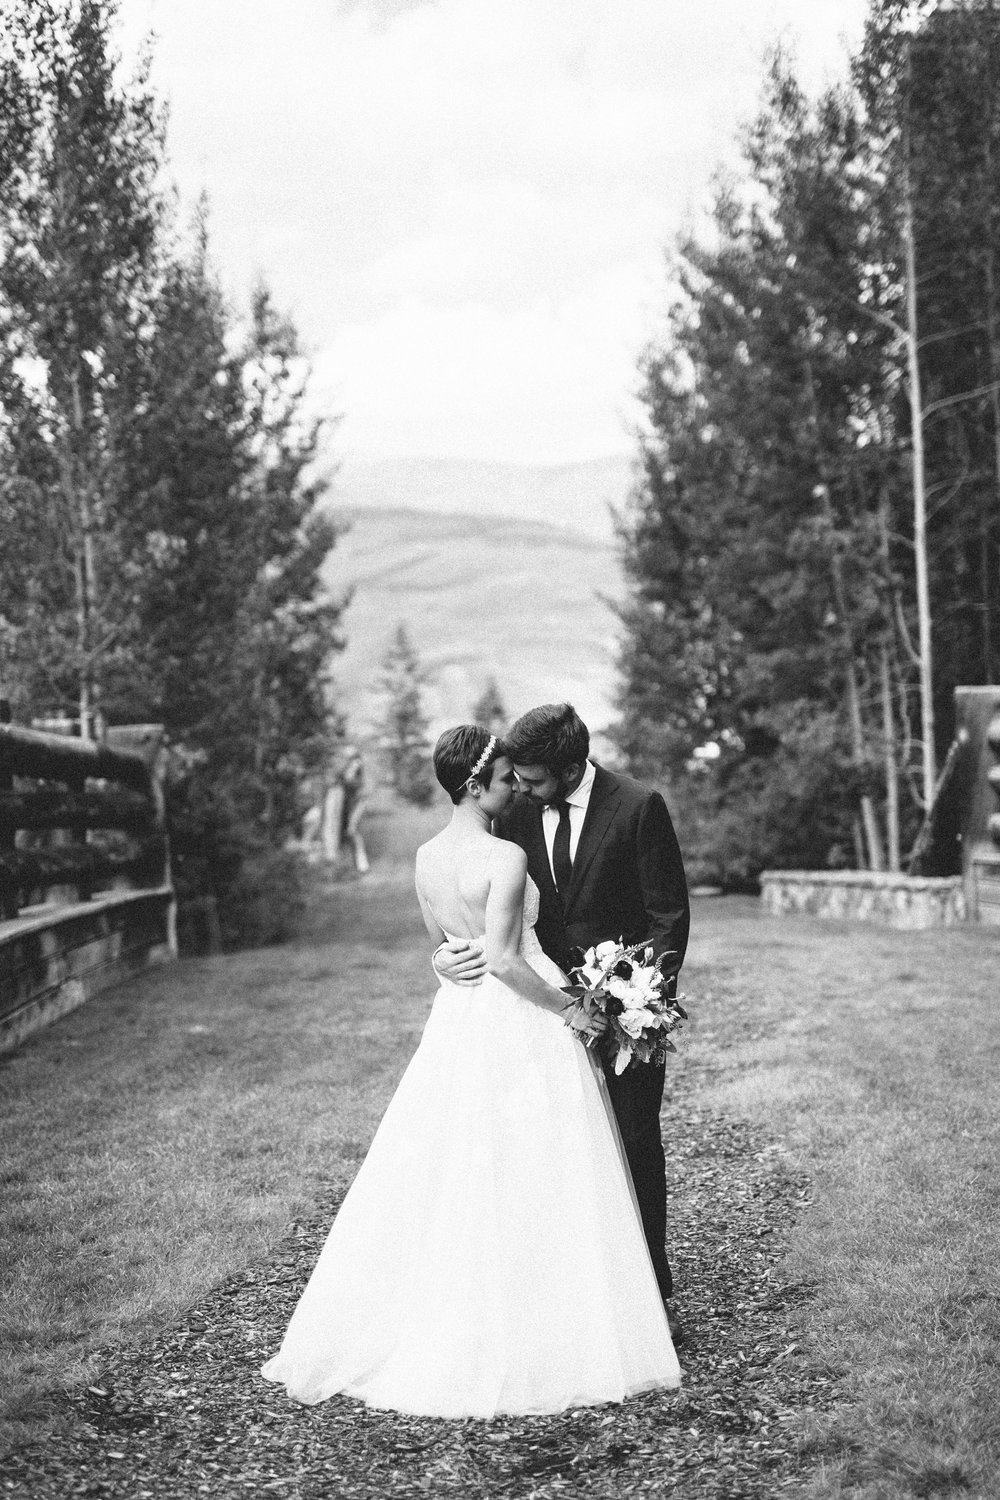 Real wedding alina brad rich romantic mountain Allie s cabin beaver creek